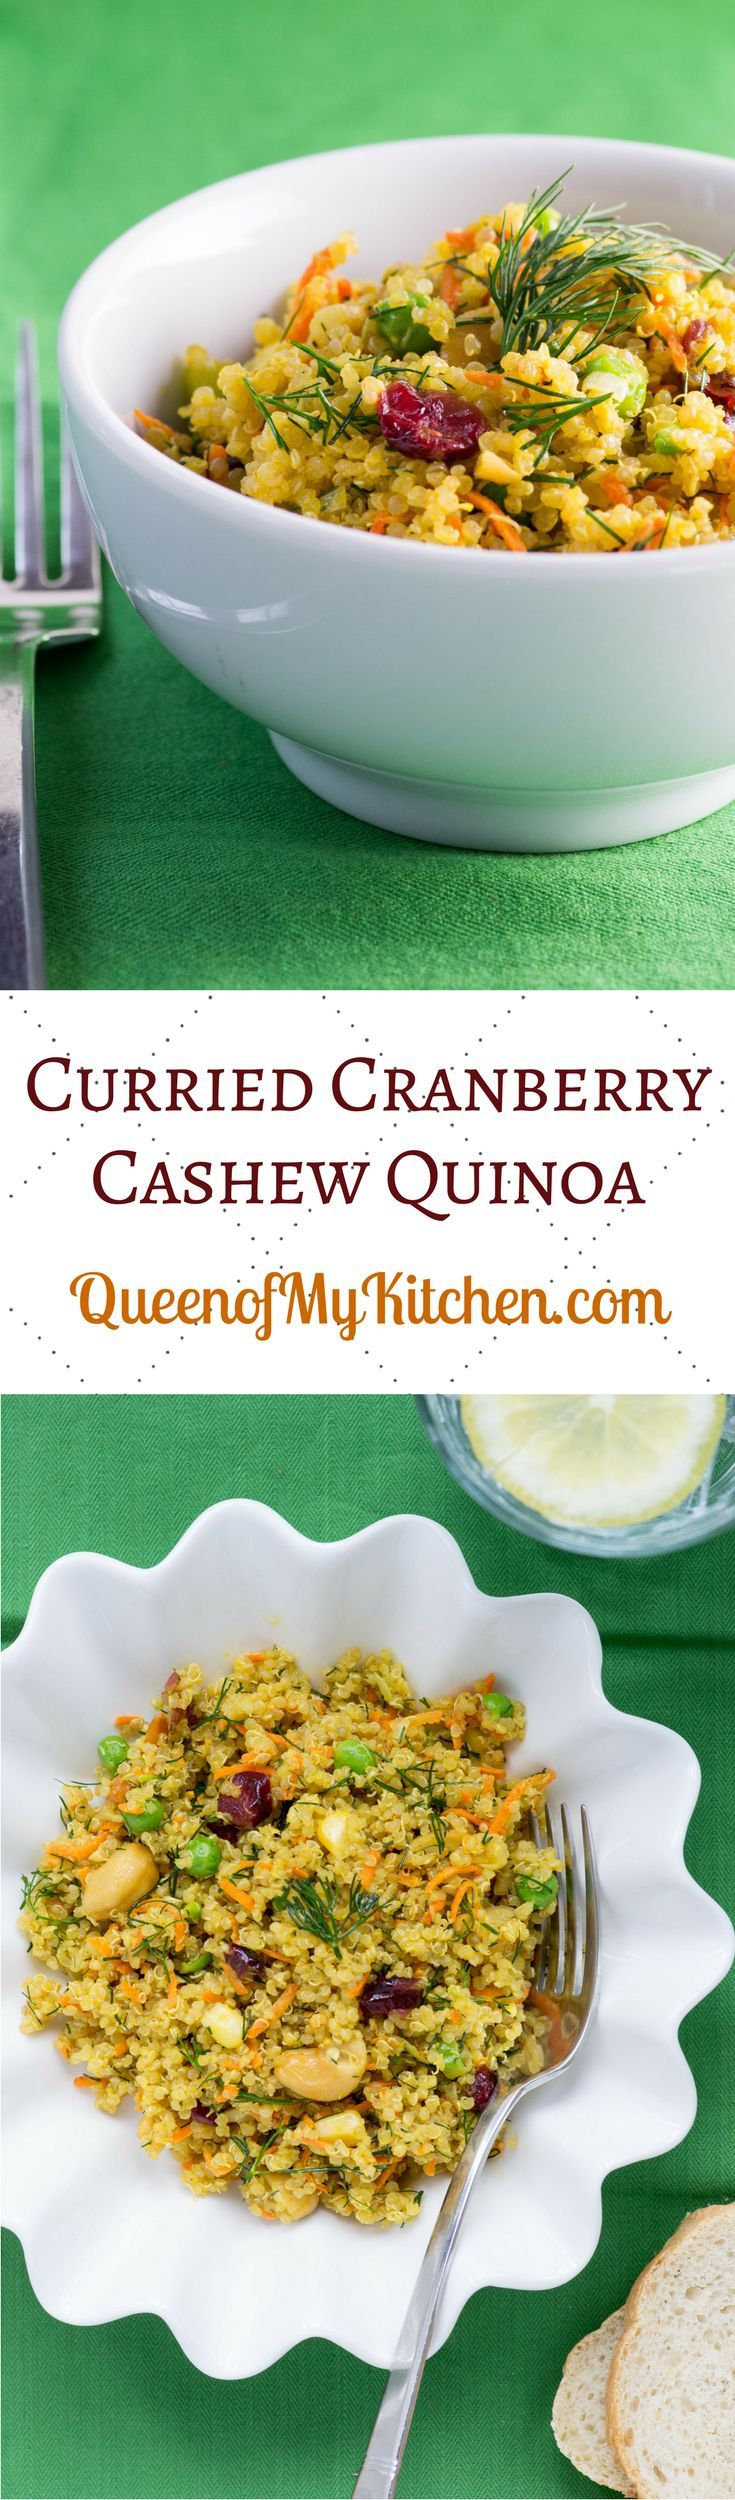 Curried Cranberry Cashew Quinoa – A quinoa salad with a colorful assortment of healthy ingredients and a curry infused Greek Yogurt dressing. Gluten-free. | QueenofMyKitchen.com